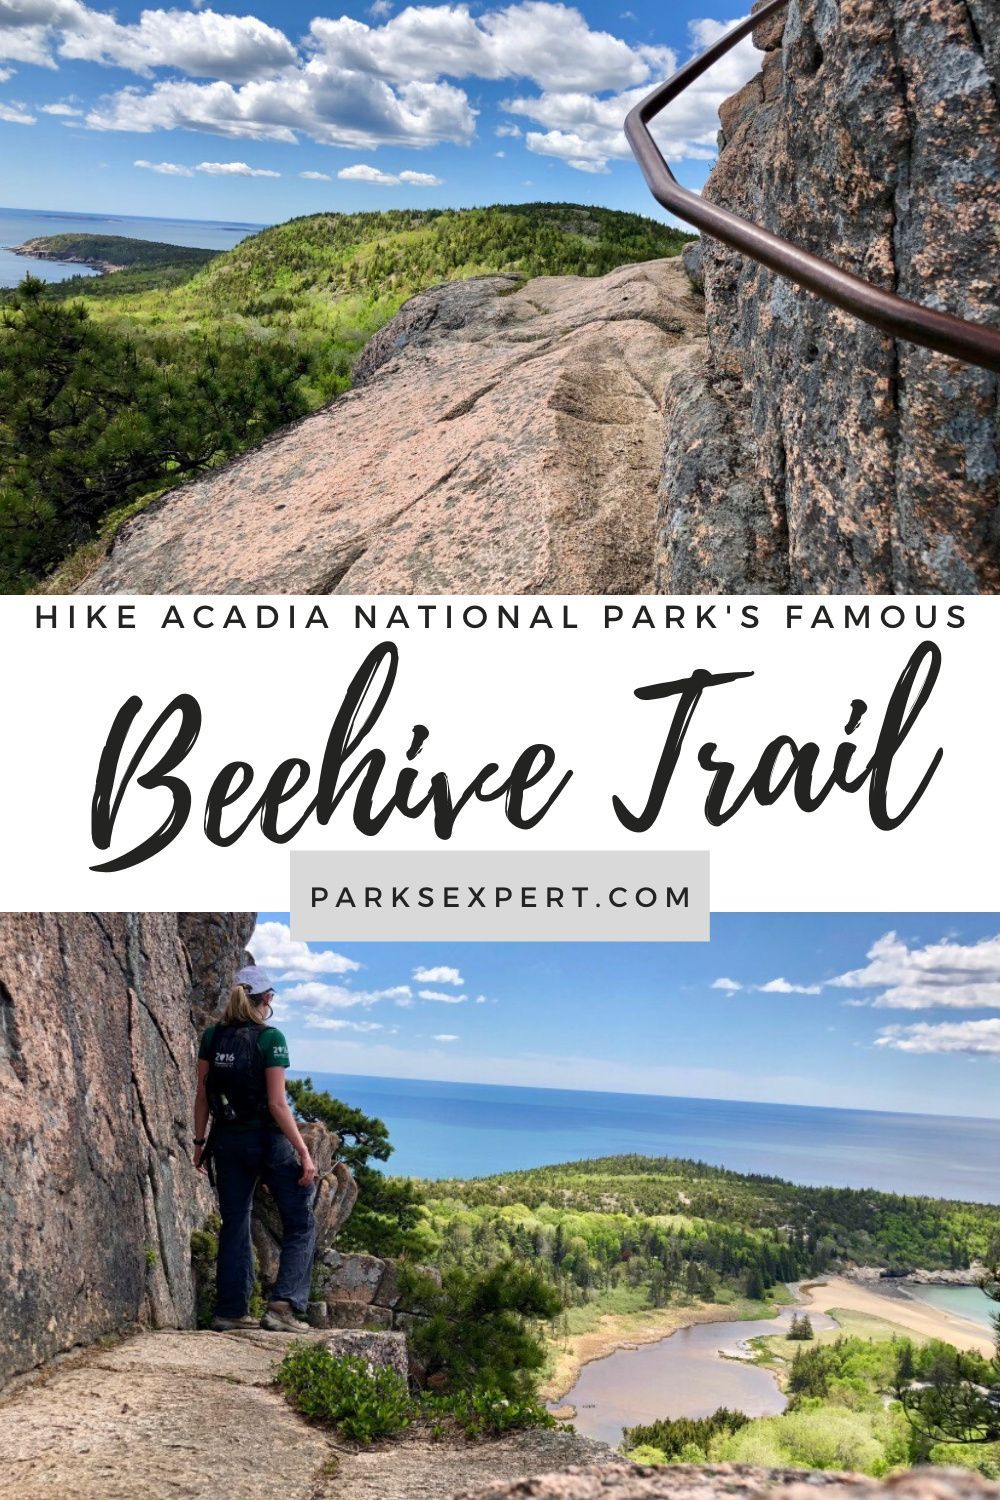 Beehive Trail In Acadia Your Guide To